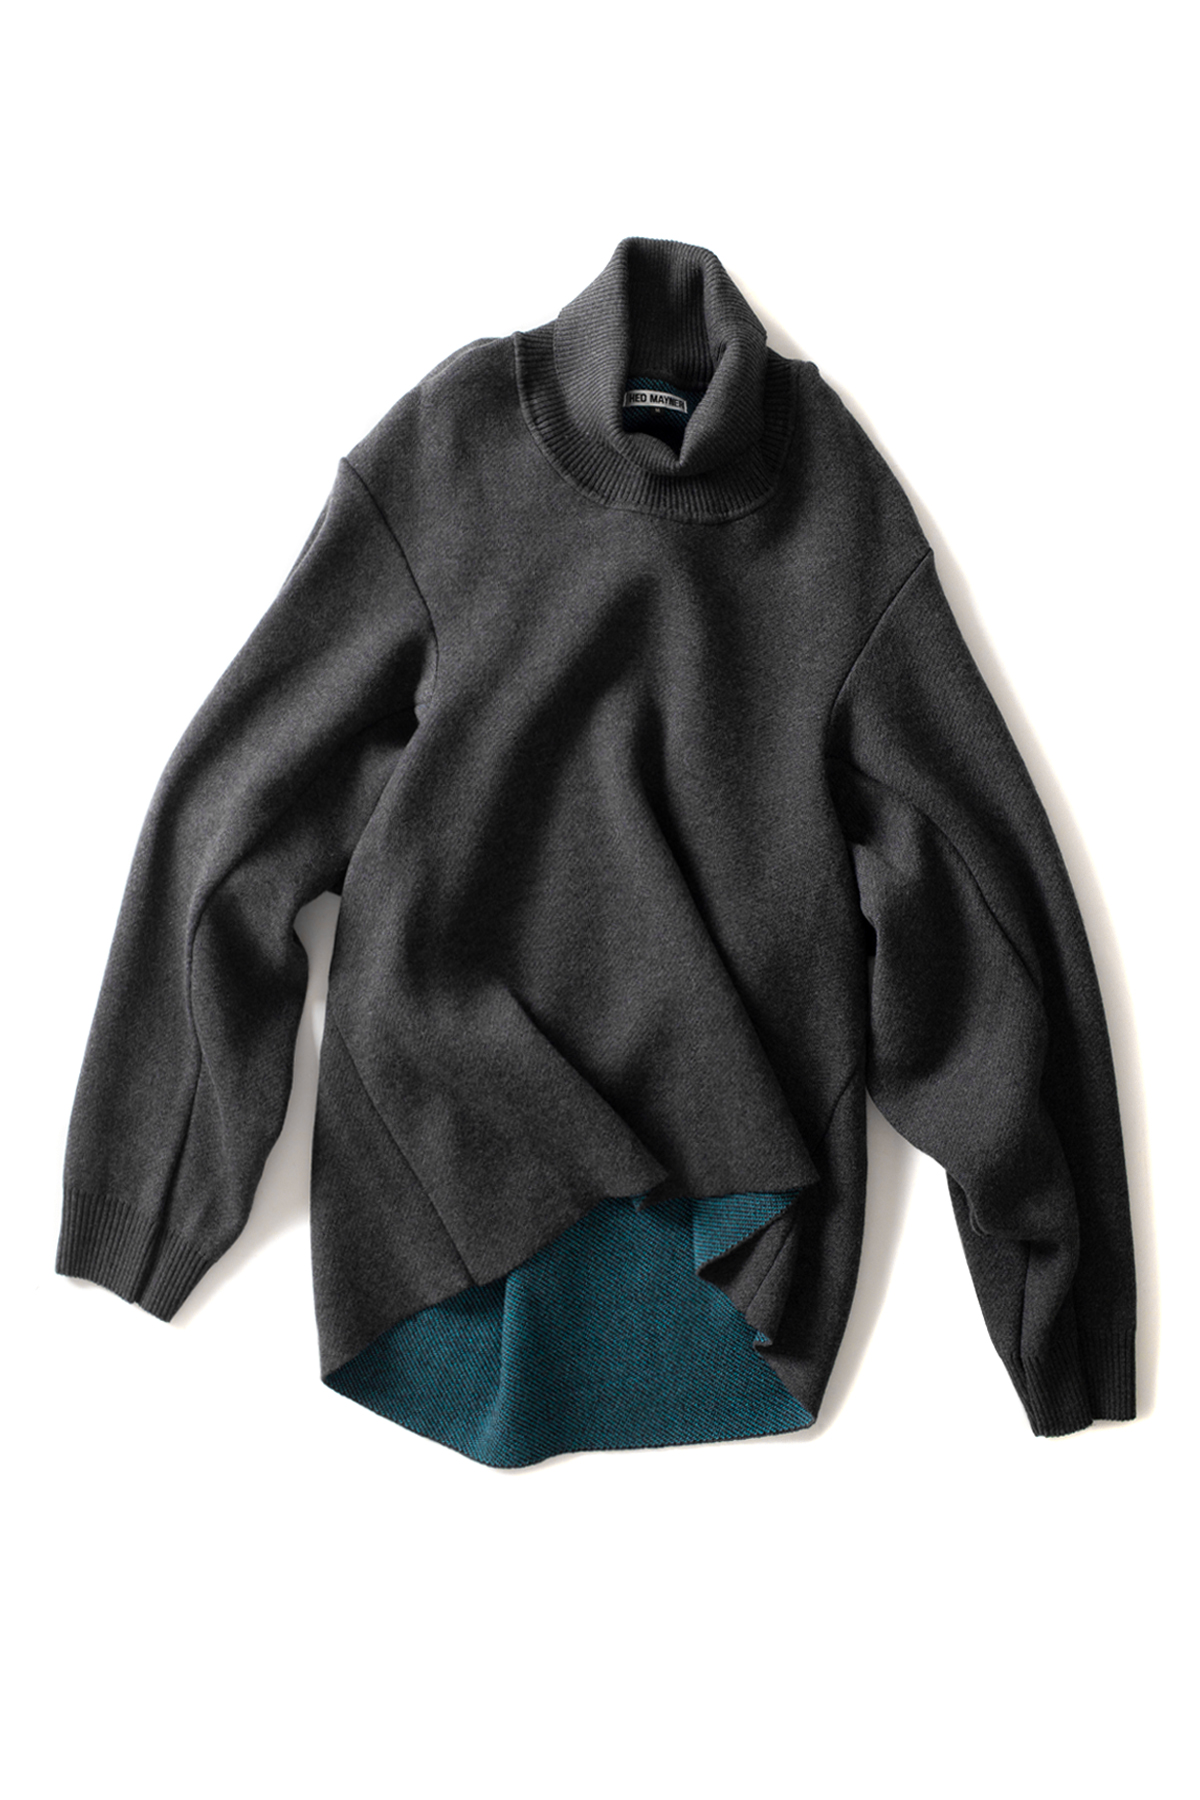 HED MAYNER : Turtleneck Sweater (Dark Grey)